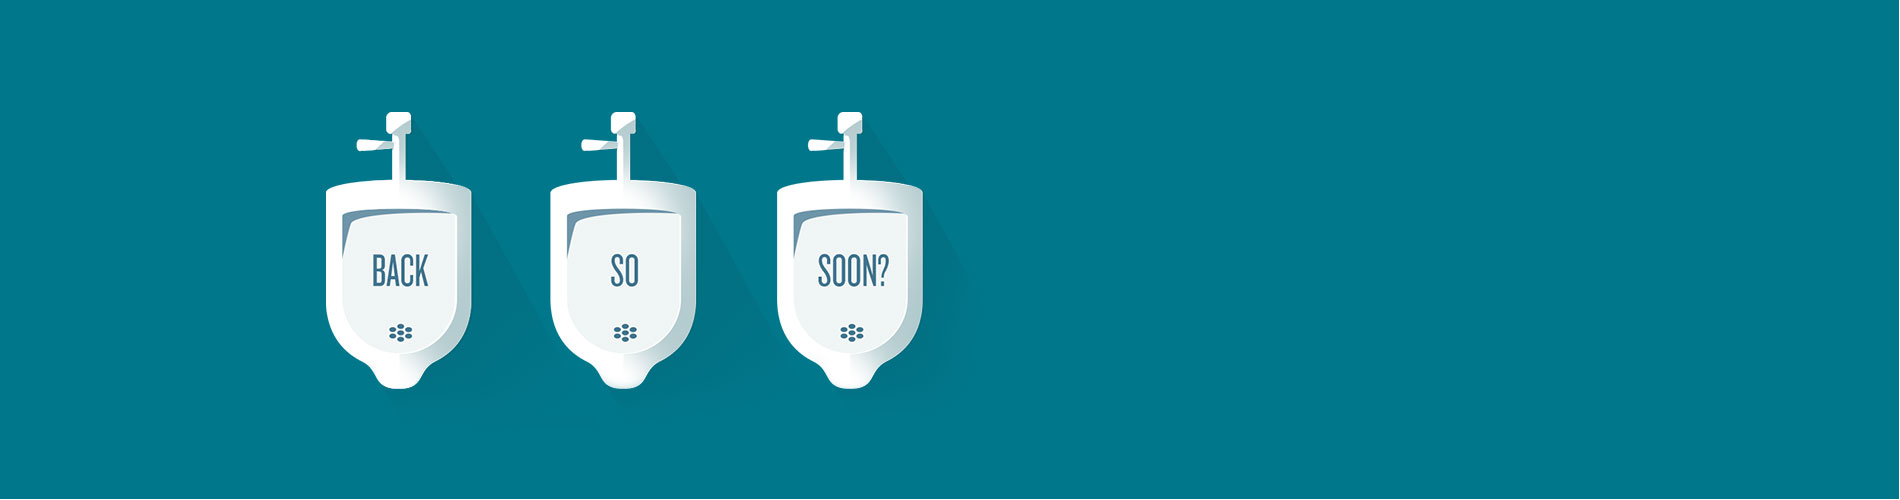 "Illustration of urinals with ""Back So Soon"" text."